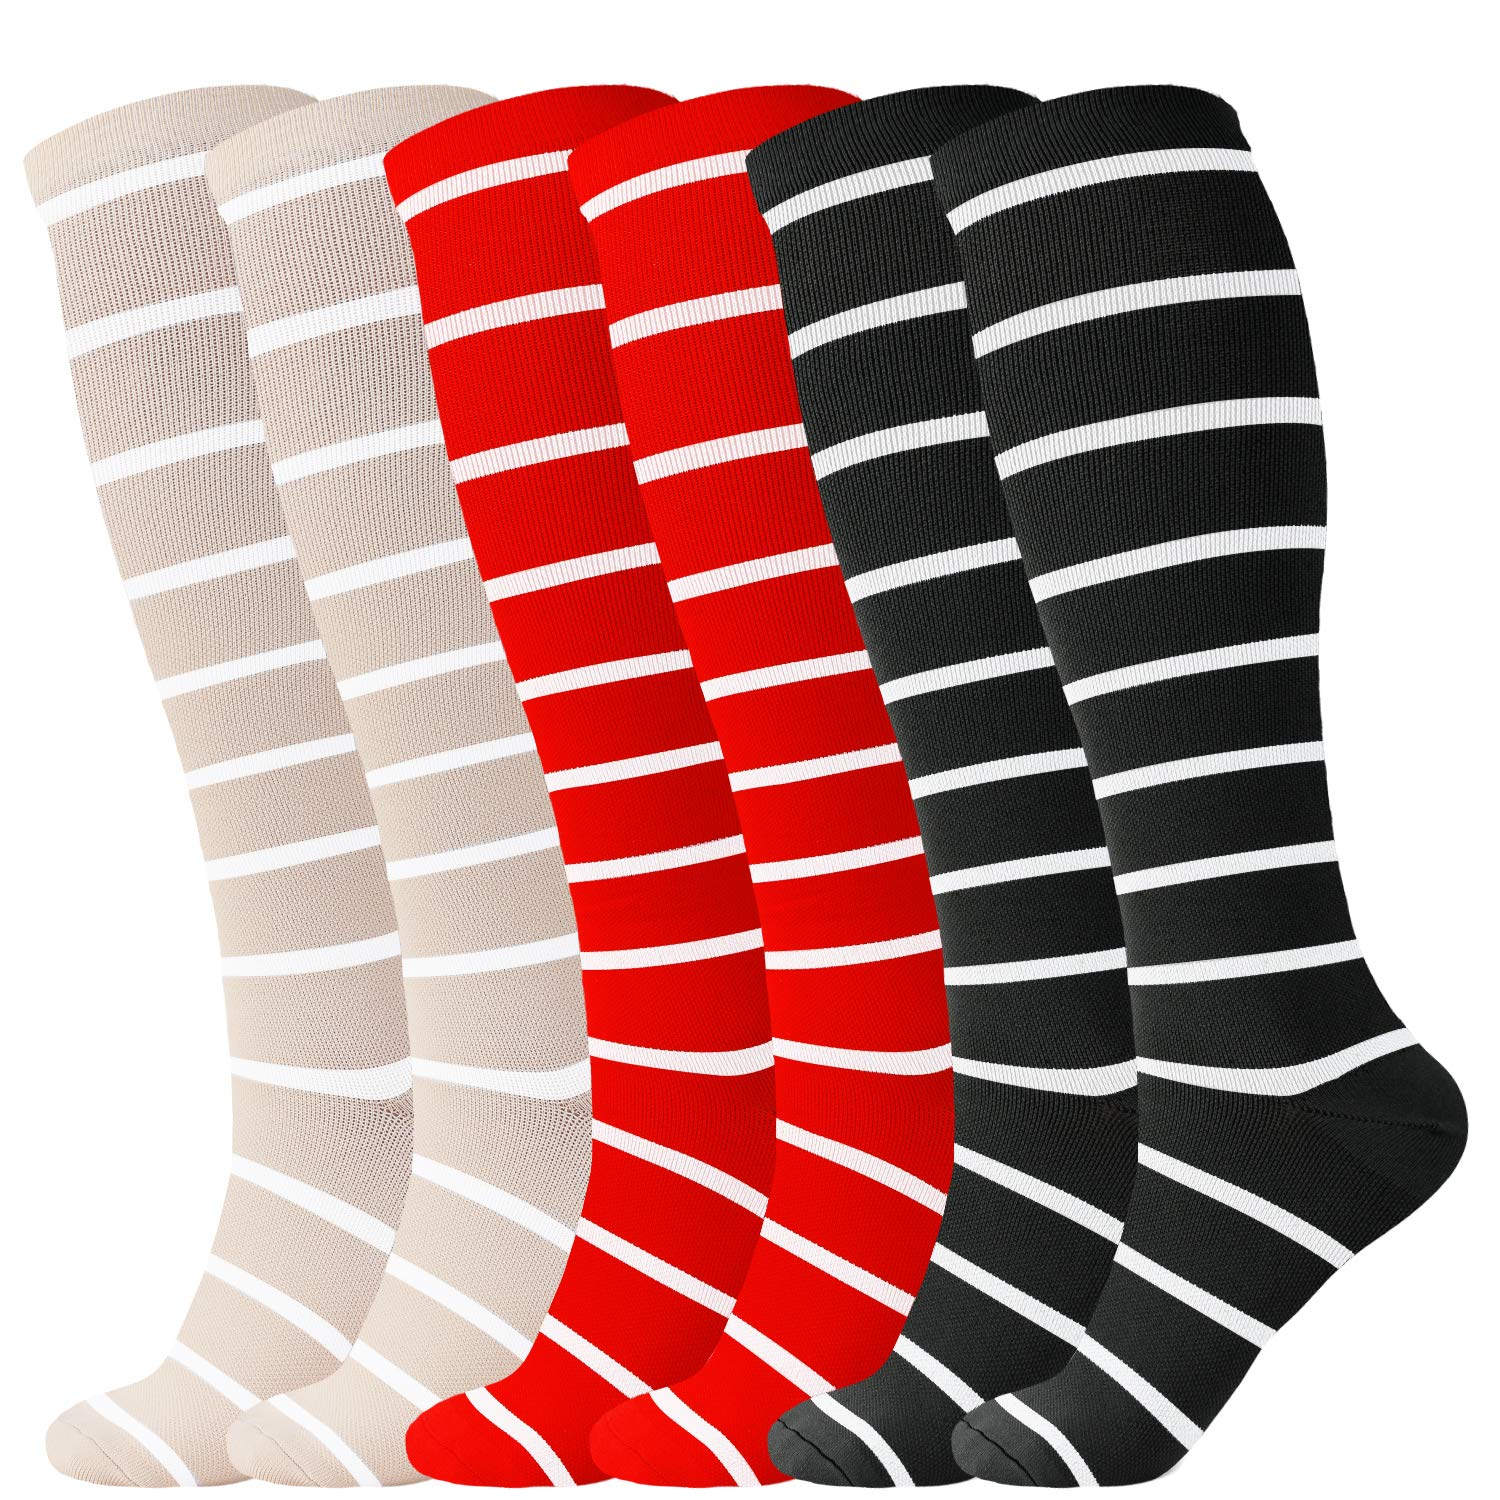 ODIJOO Compression Socks 20-30 mmHg for Women & Men(3 Pairs)-Best for Running, Athletic, Medical, Pregnancy and Travel